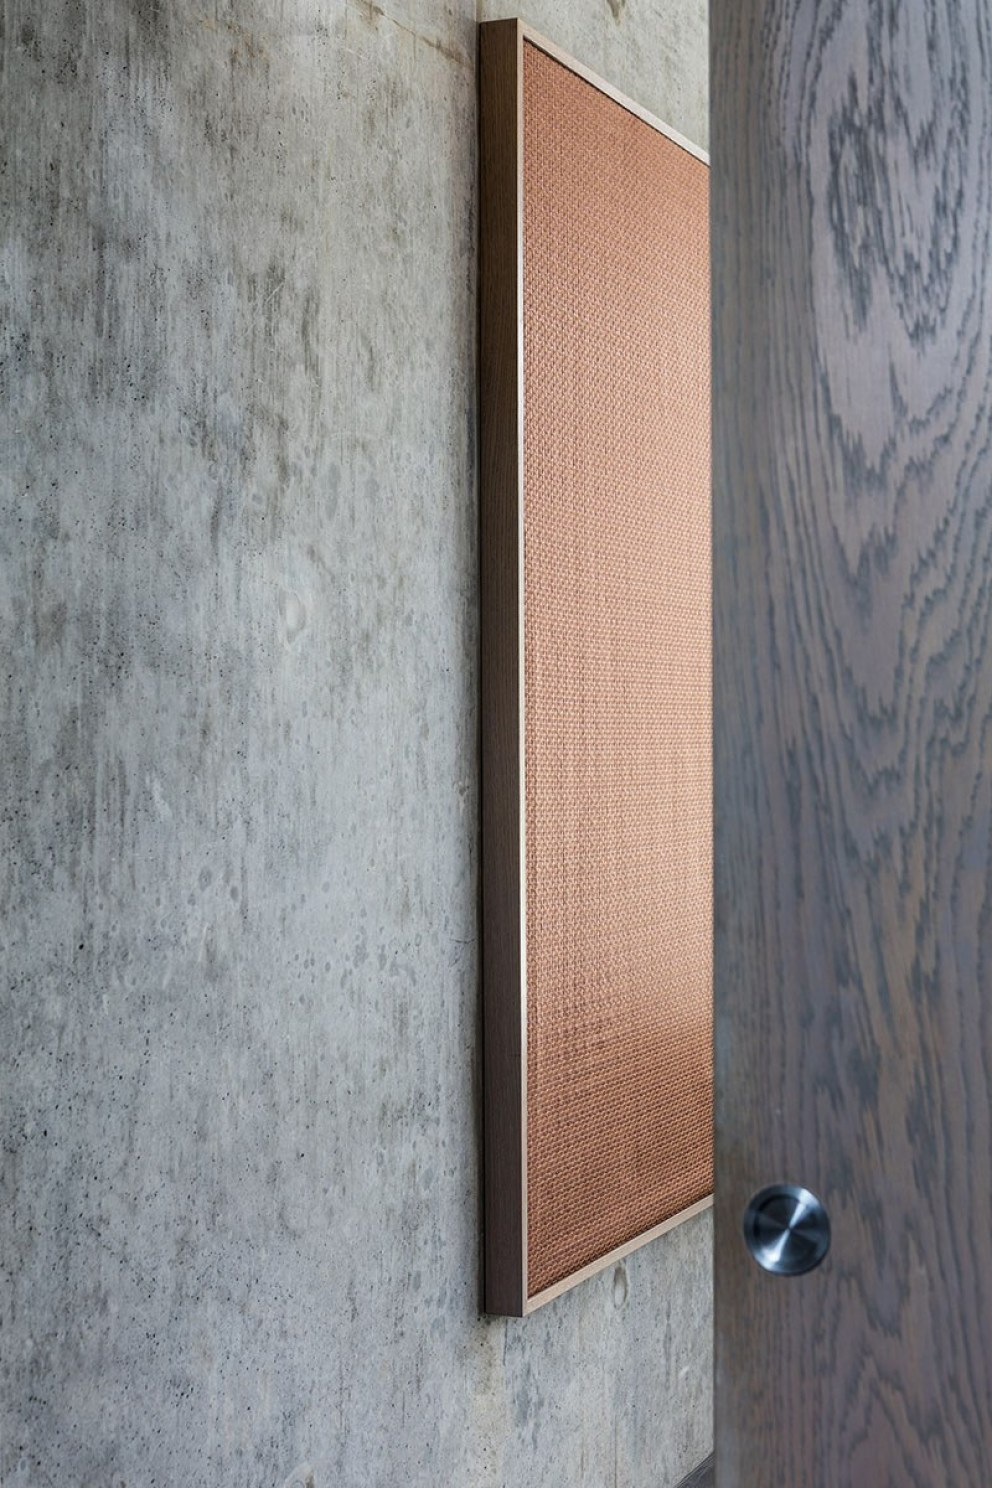 West London contemporary build | Copper and polished concrete design detail | Interior Designers